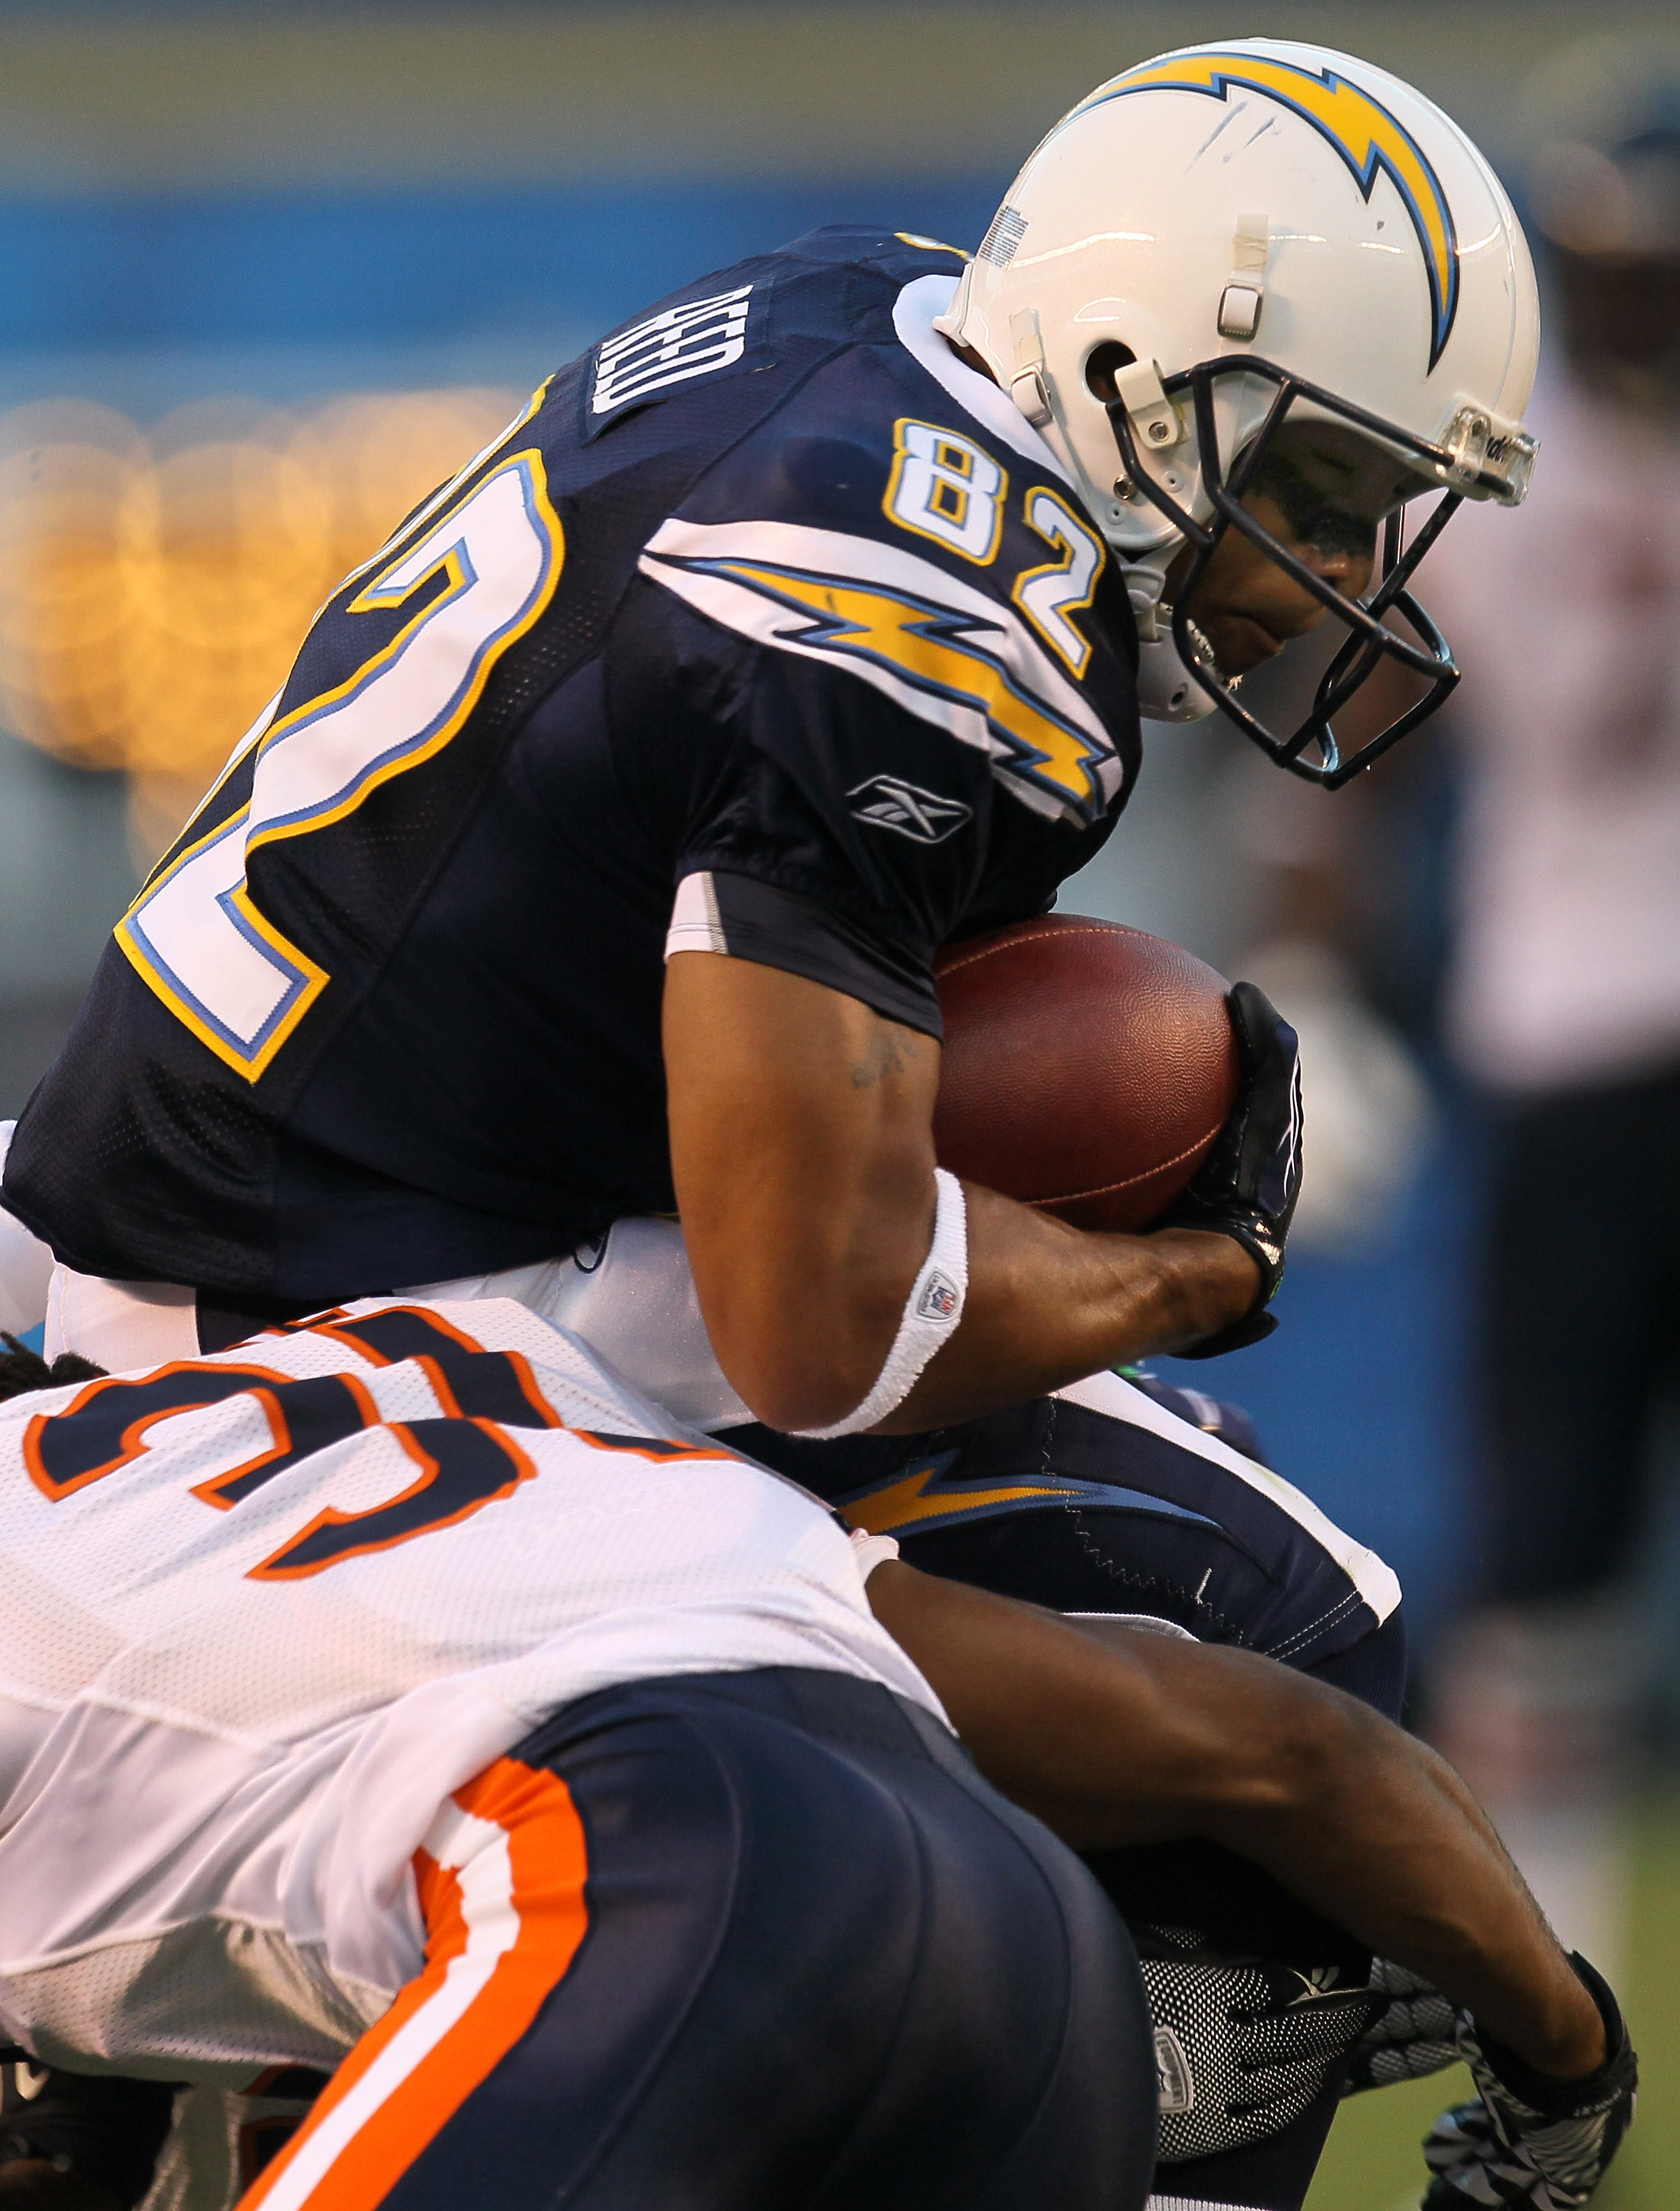 SAN DIEGO - AUGUST 14:   Wide receiver Josh Reed #82 of the San Diego Chargers carries the ball against the Chicago Bears on August 14, 2010 at Qualcomm Stadium in San Diego, California.   (Photo by Stephen Dunn/Getty Images)